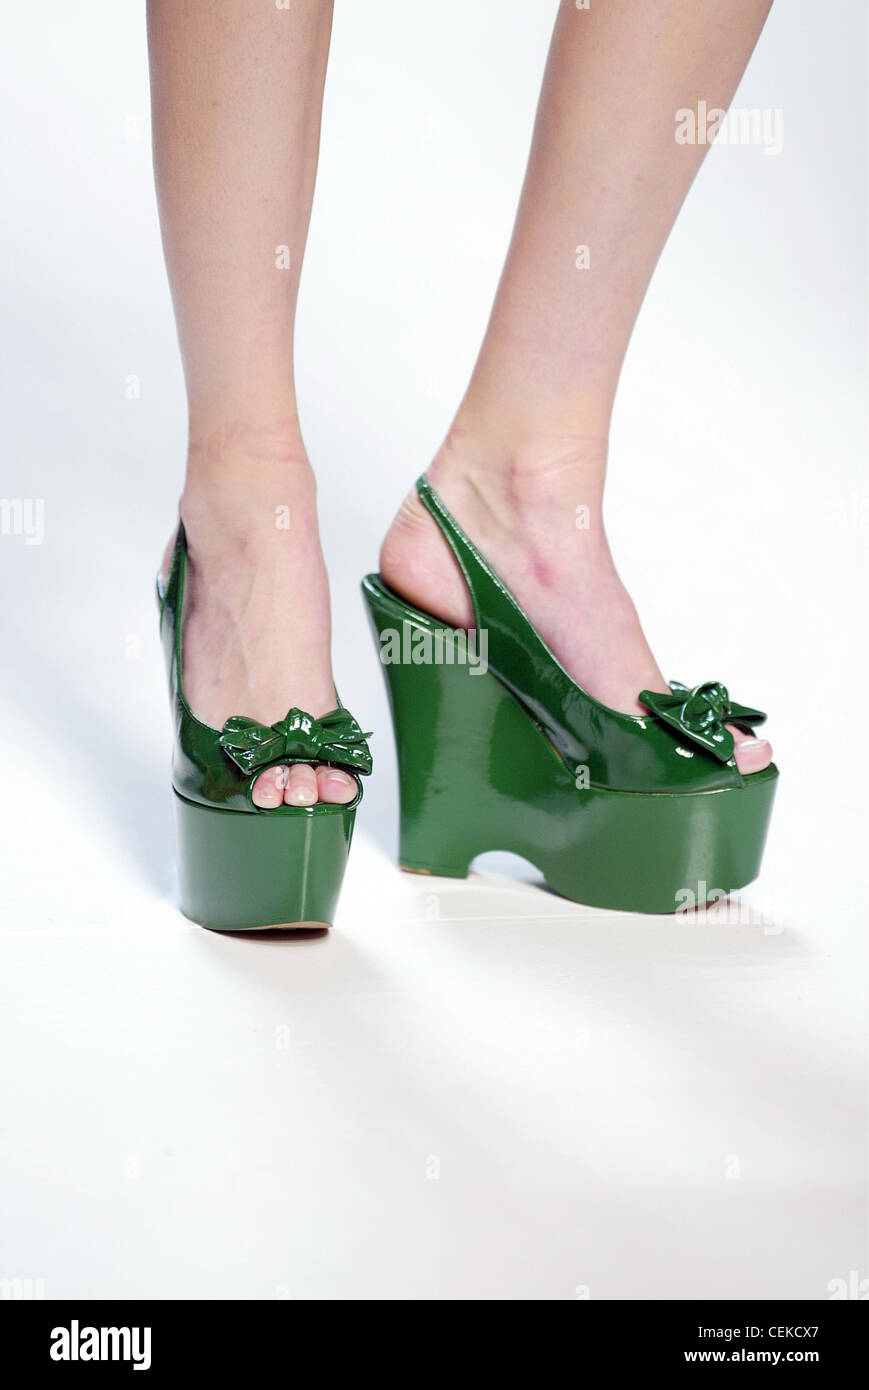 9668da8880d Moschino Cheap and Chic Milan Ready to Wear S S Cropped legs of model  wearing green patent leather platform slingbacks ribbon